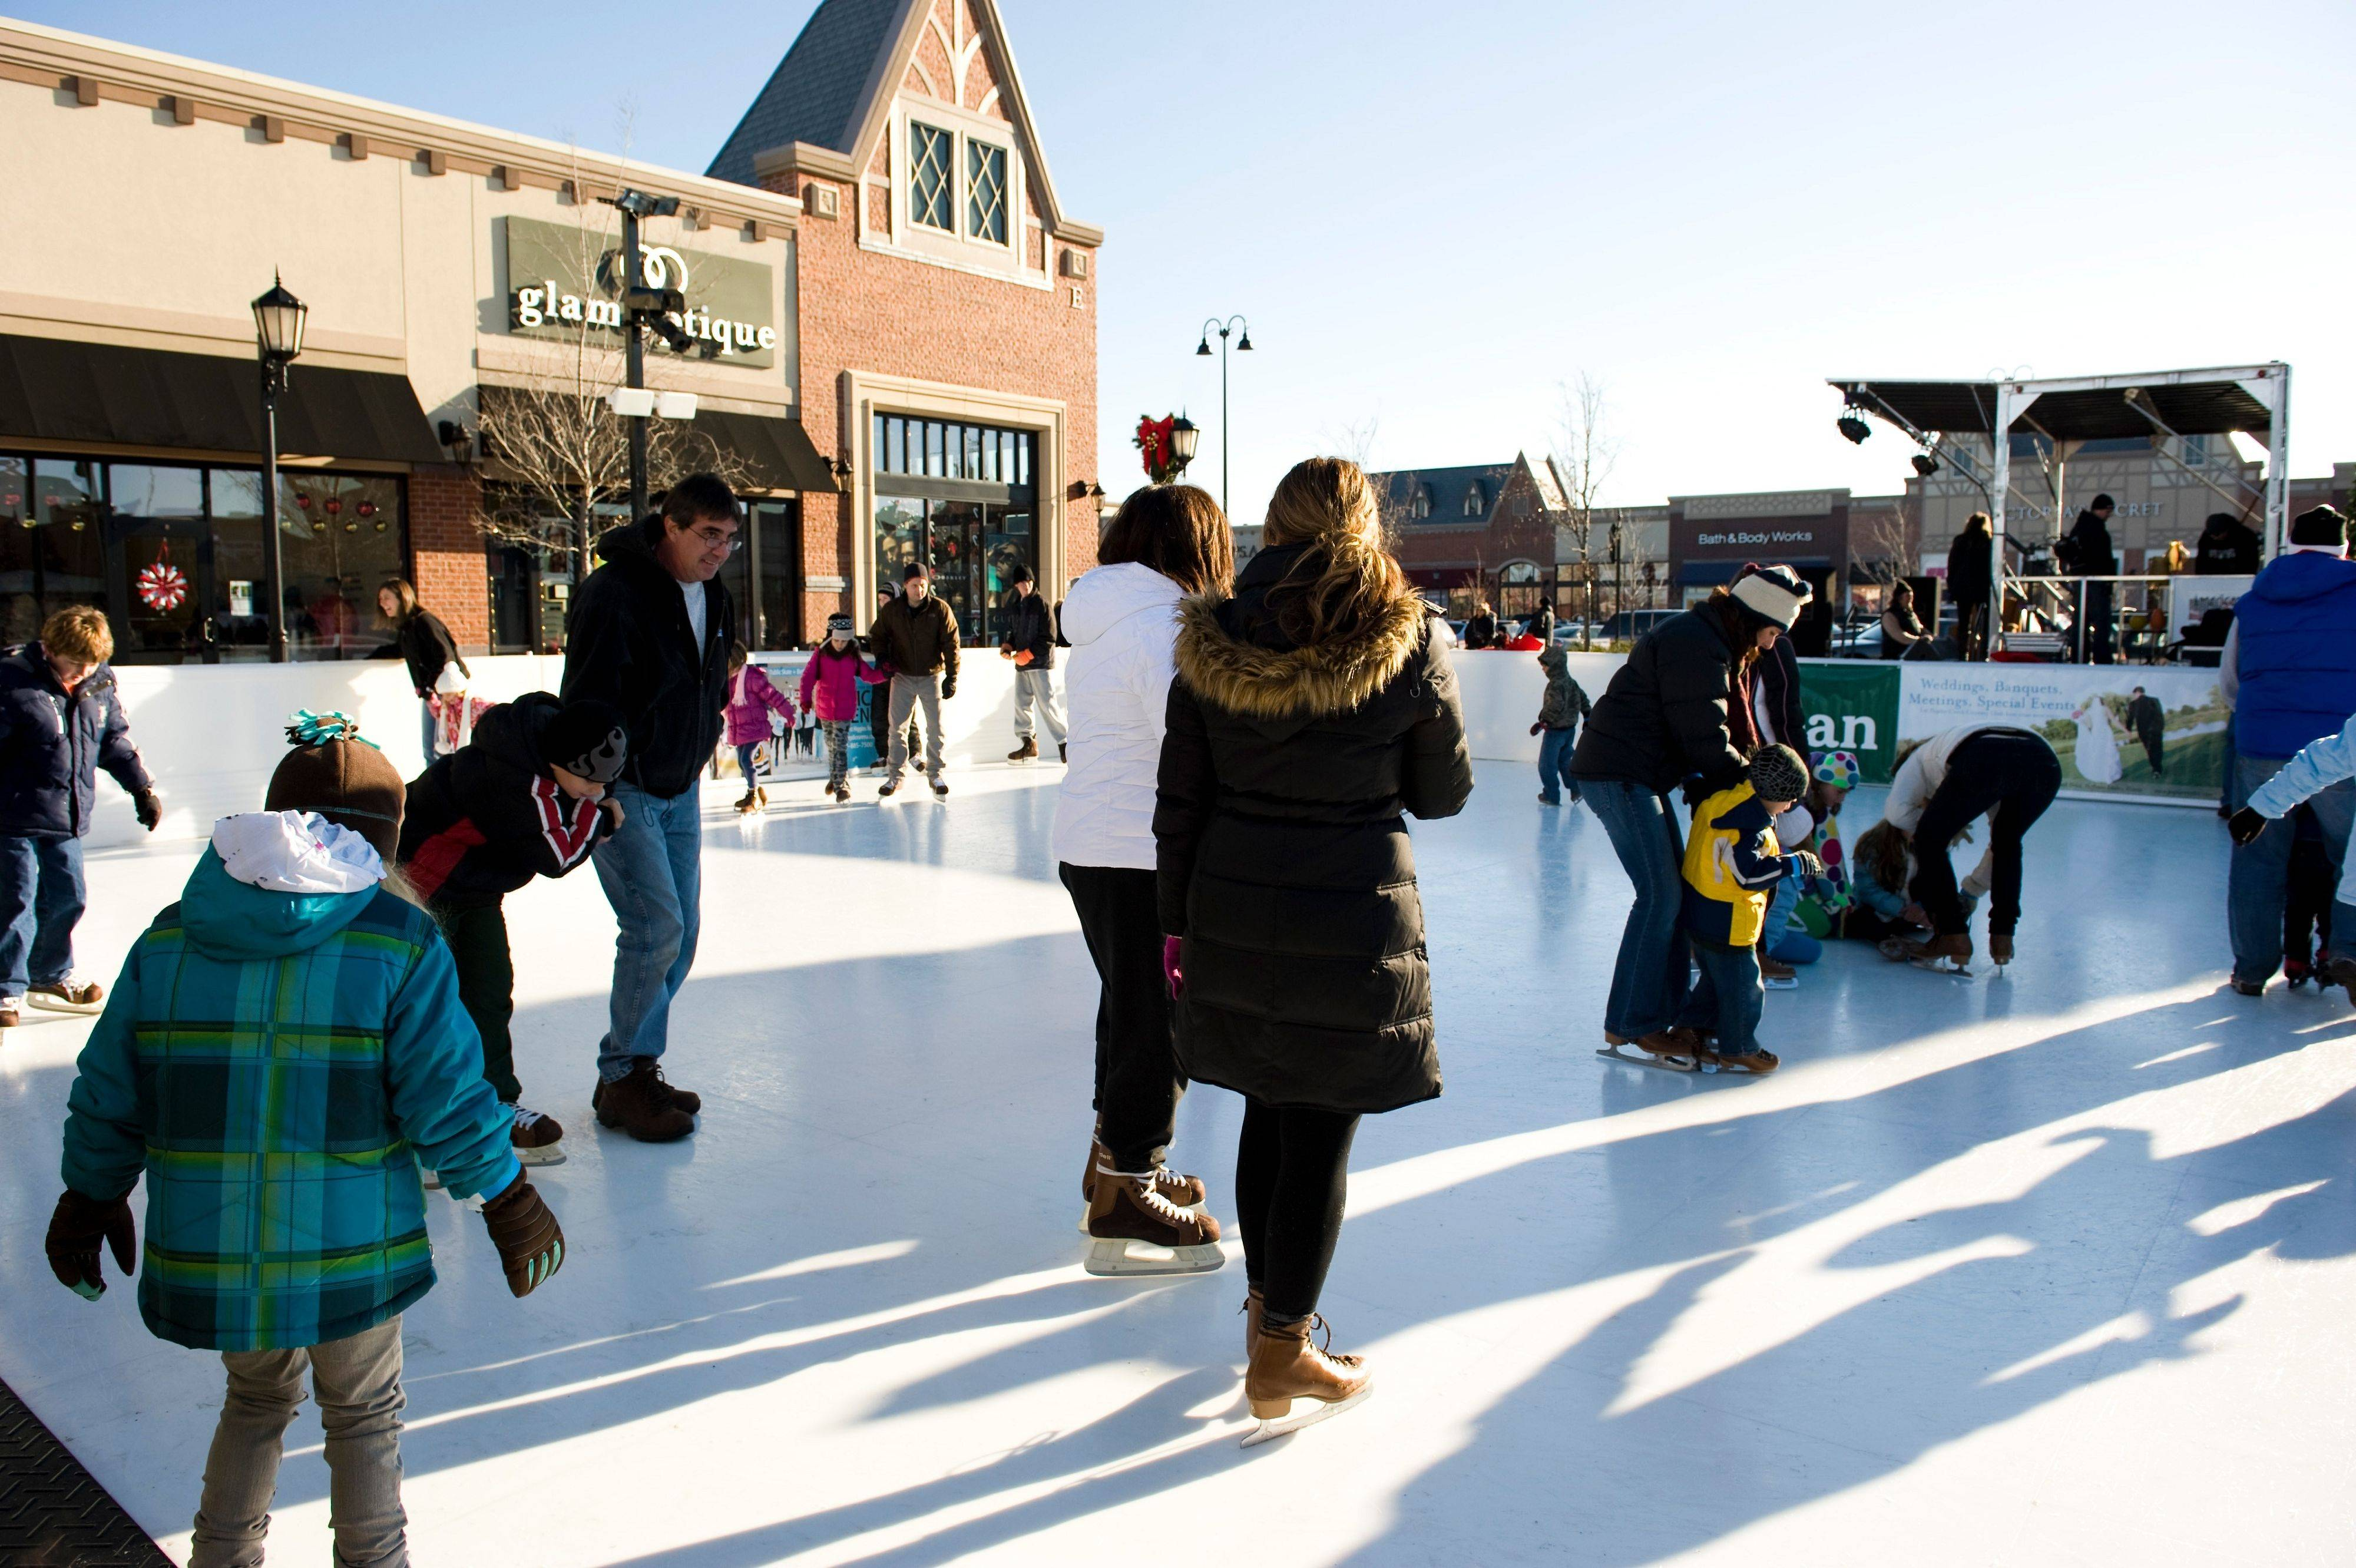 The Arboretum of South Barrington opened their first outdoor skating rink last month.